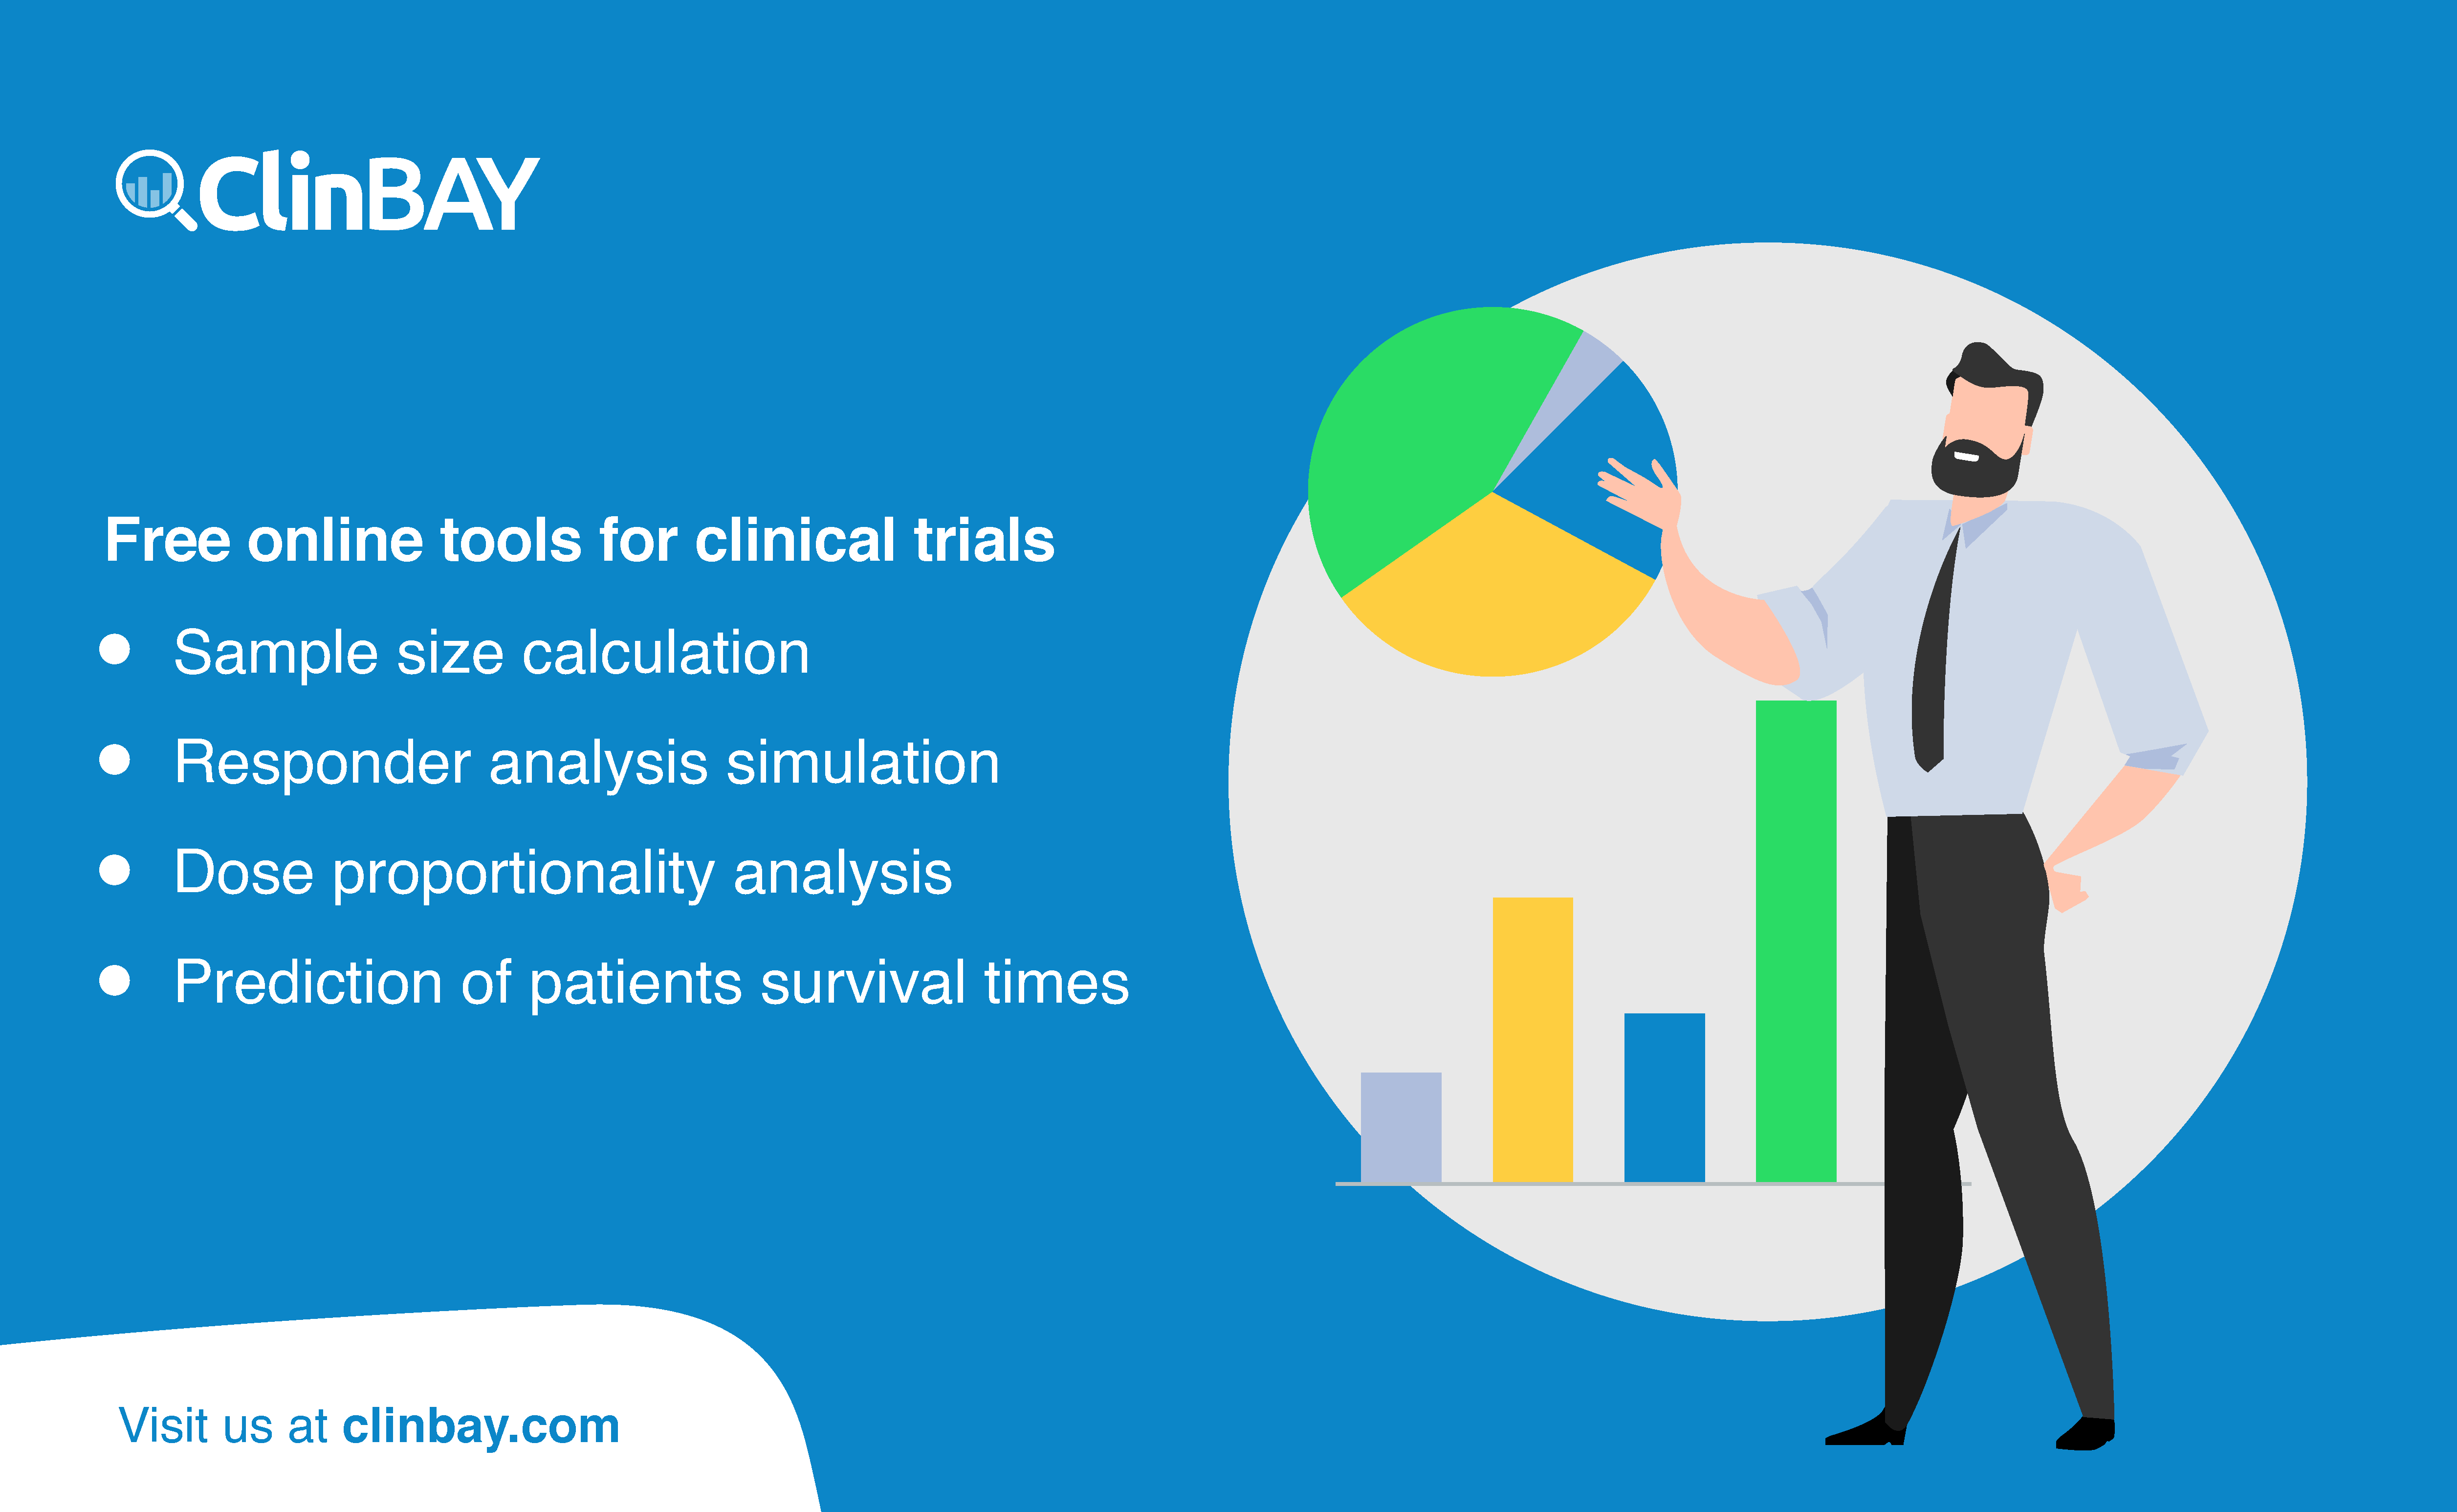 Free online tools for clinical trials